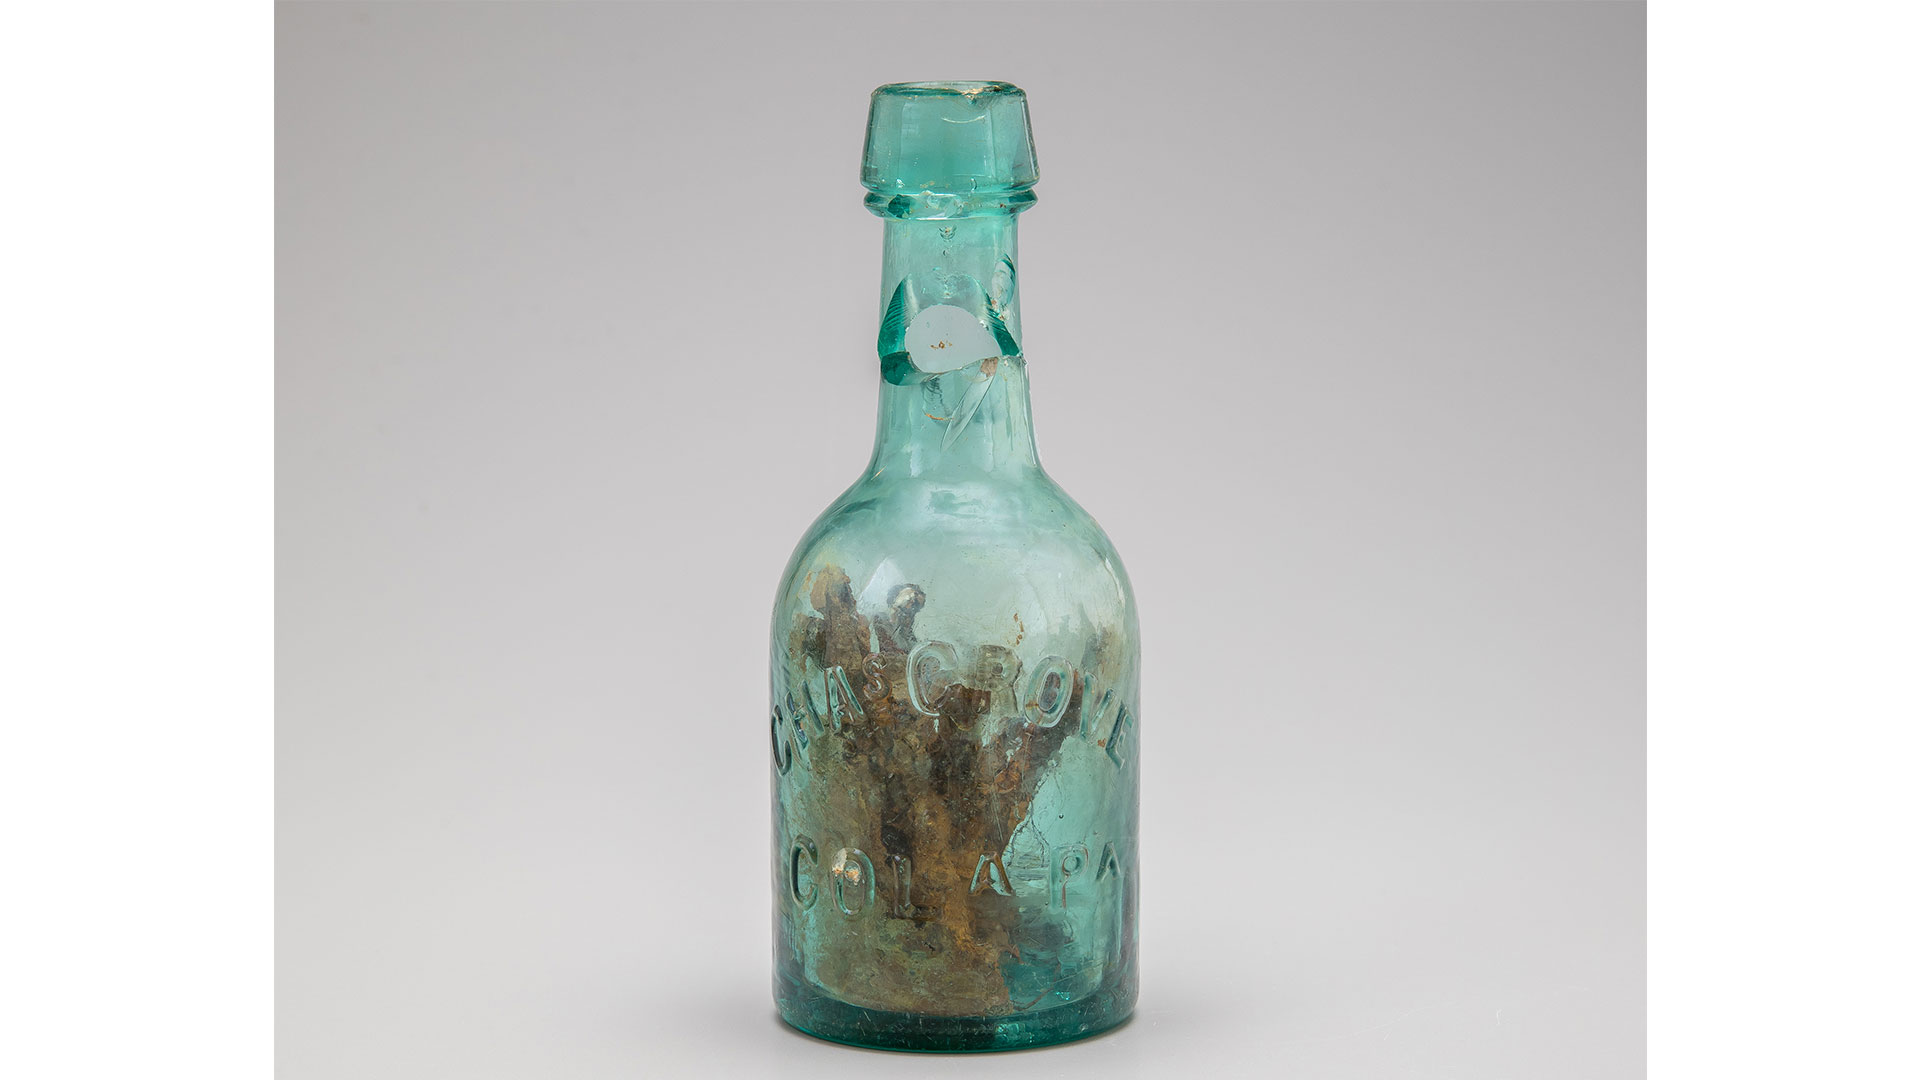 """Virginia Archaeologists Uncover Rare Civil War-Era """"Witch Bottle"""" in Highway Median"""